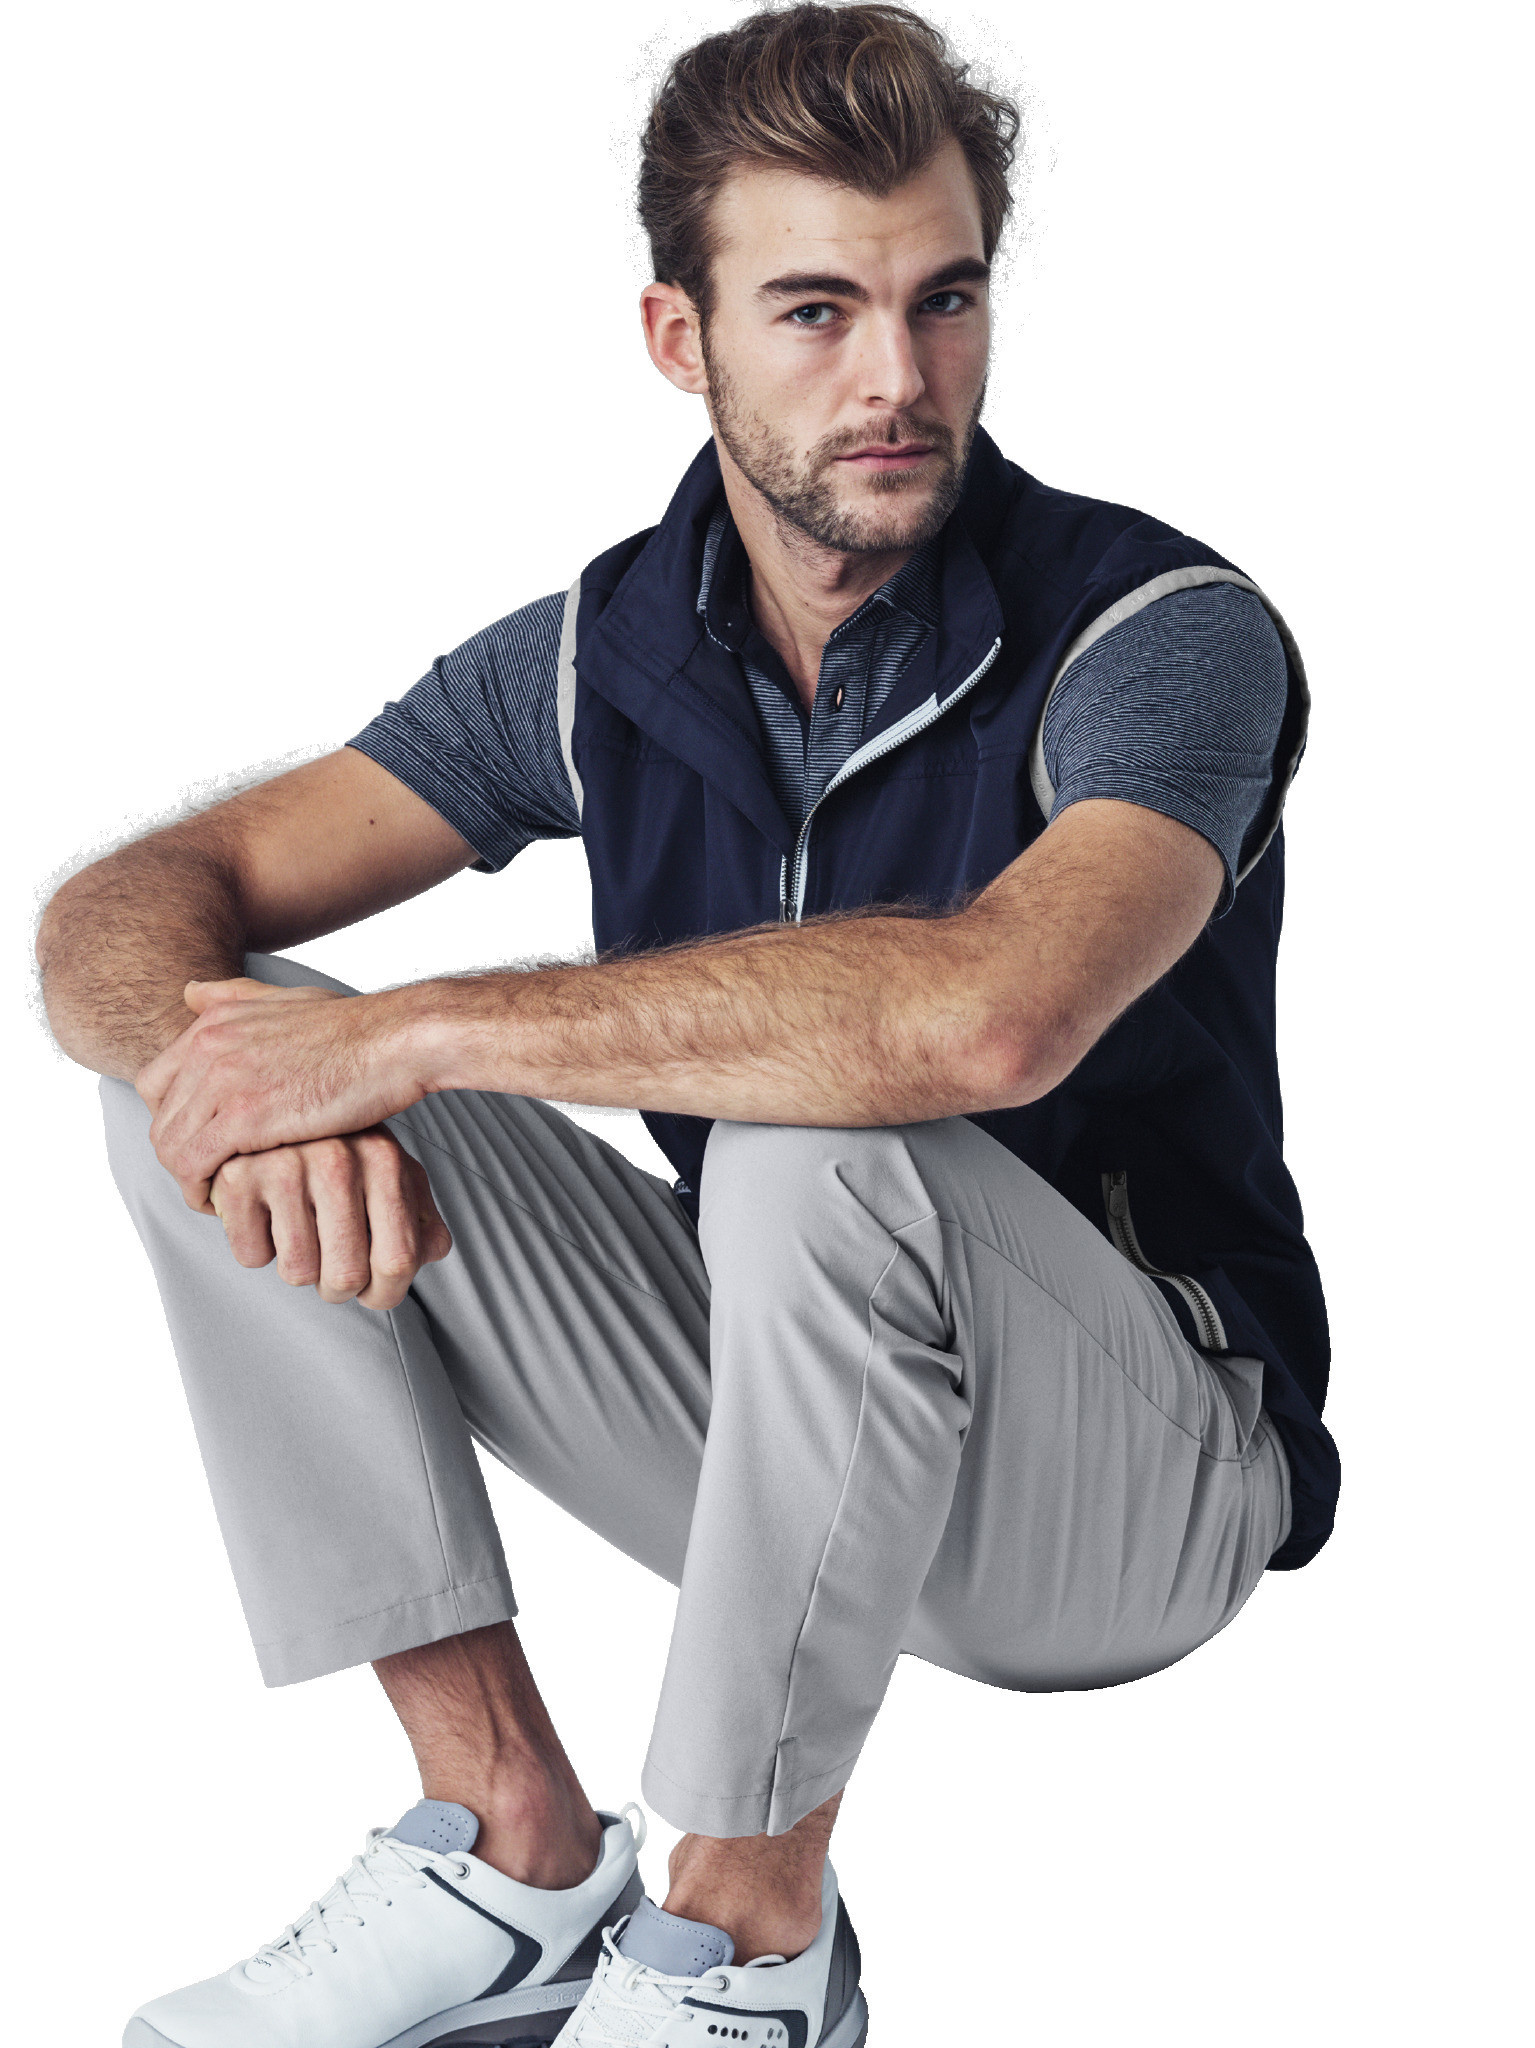 Made-to-measure golf/athletic wear from J.Hilburn.